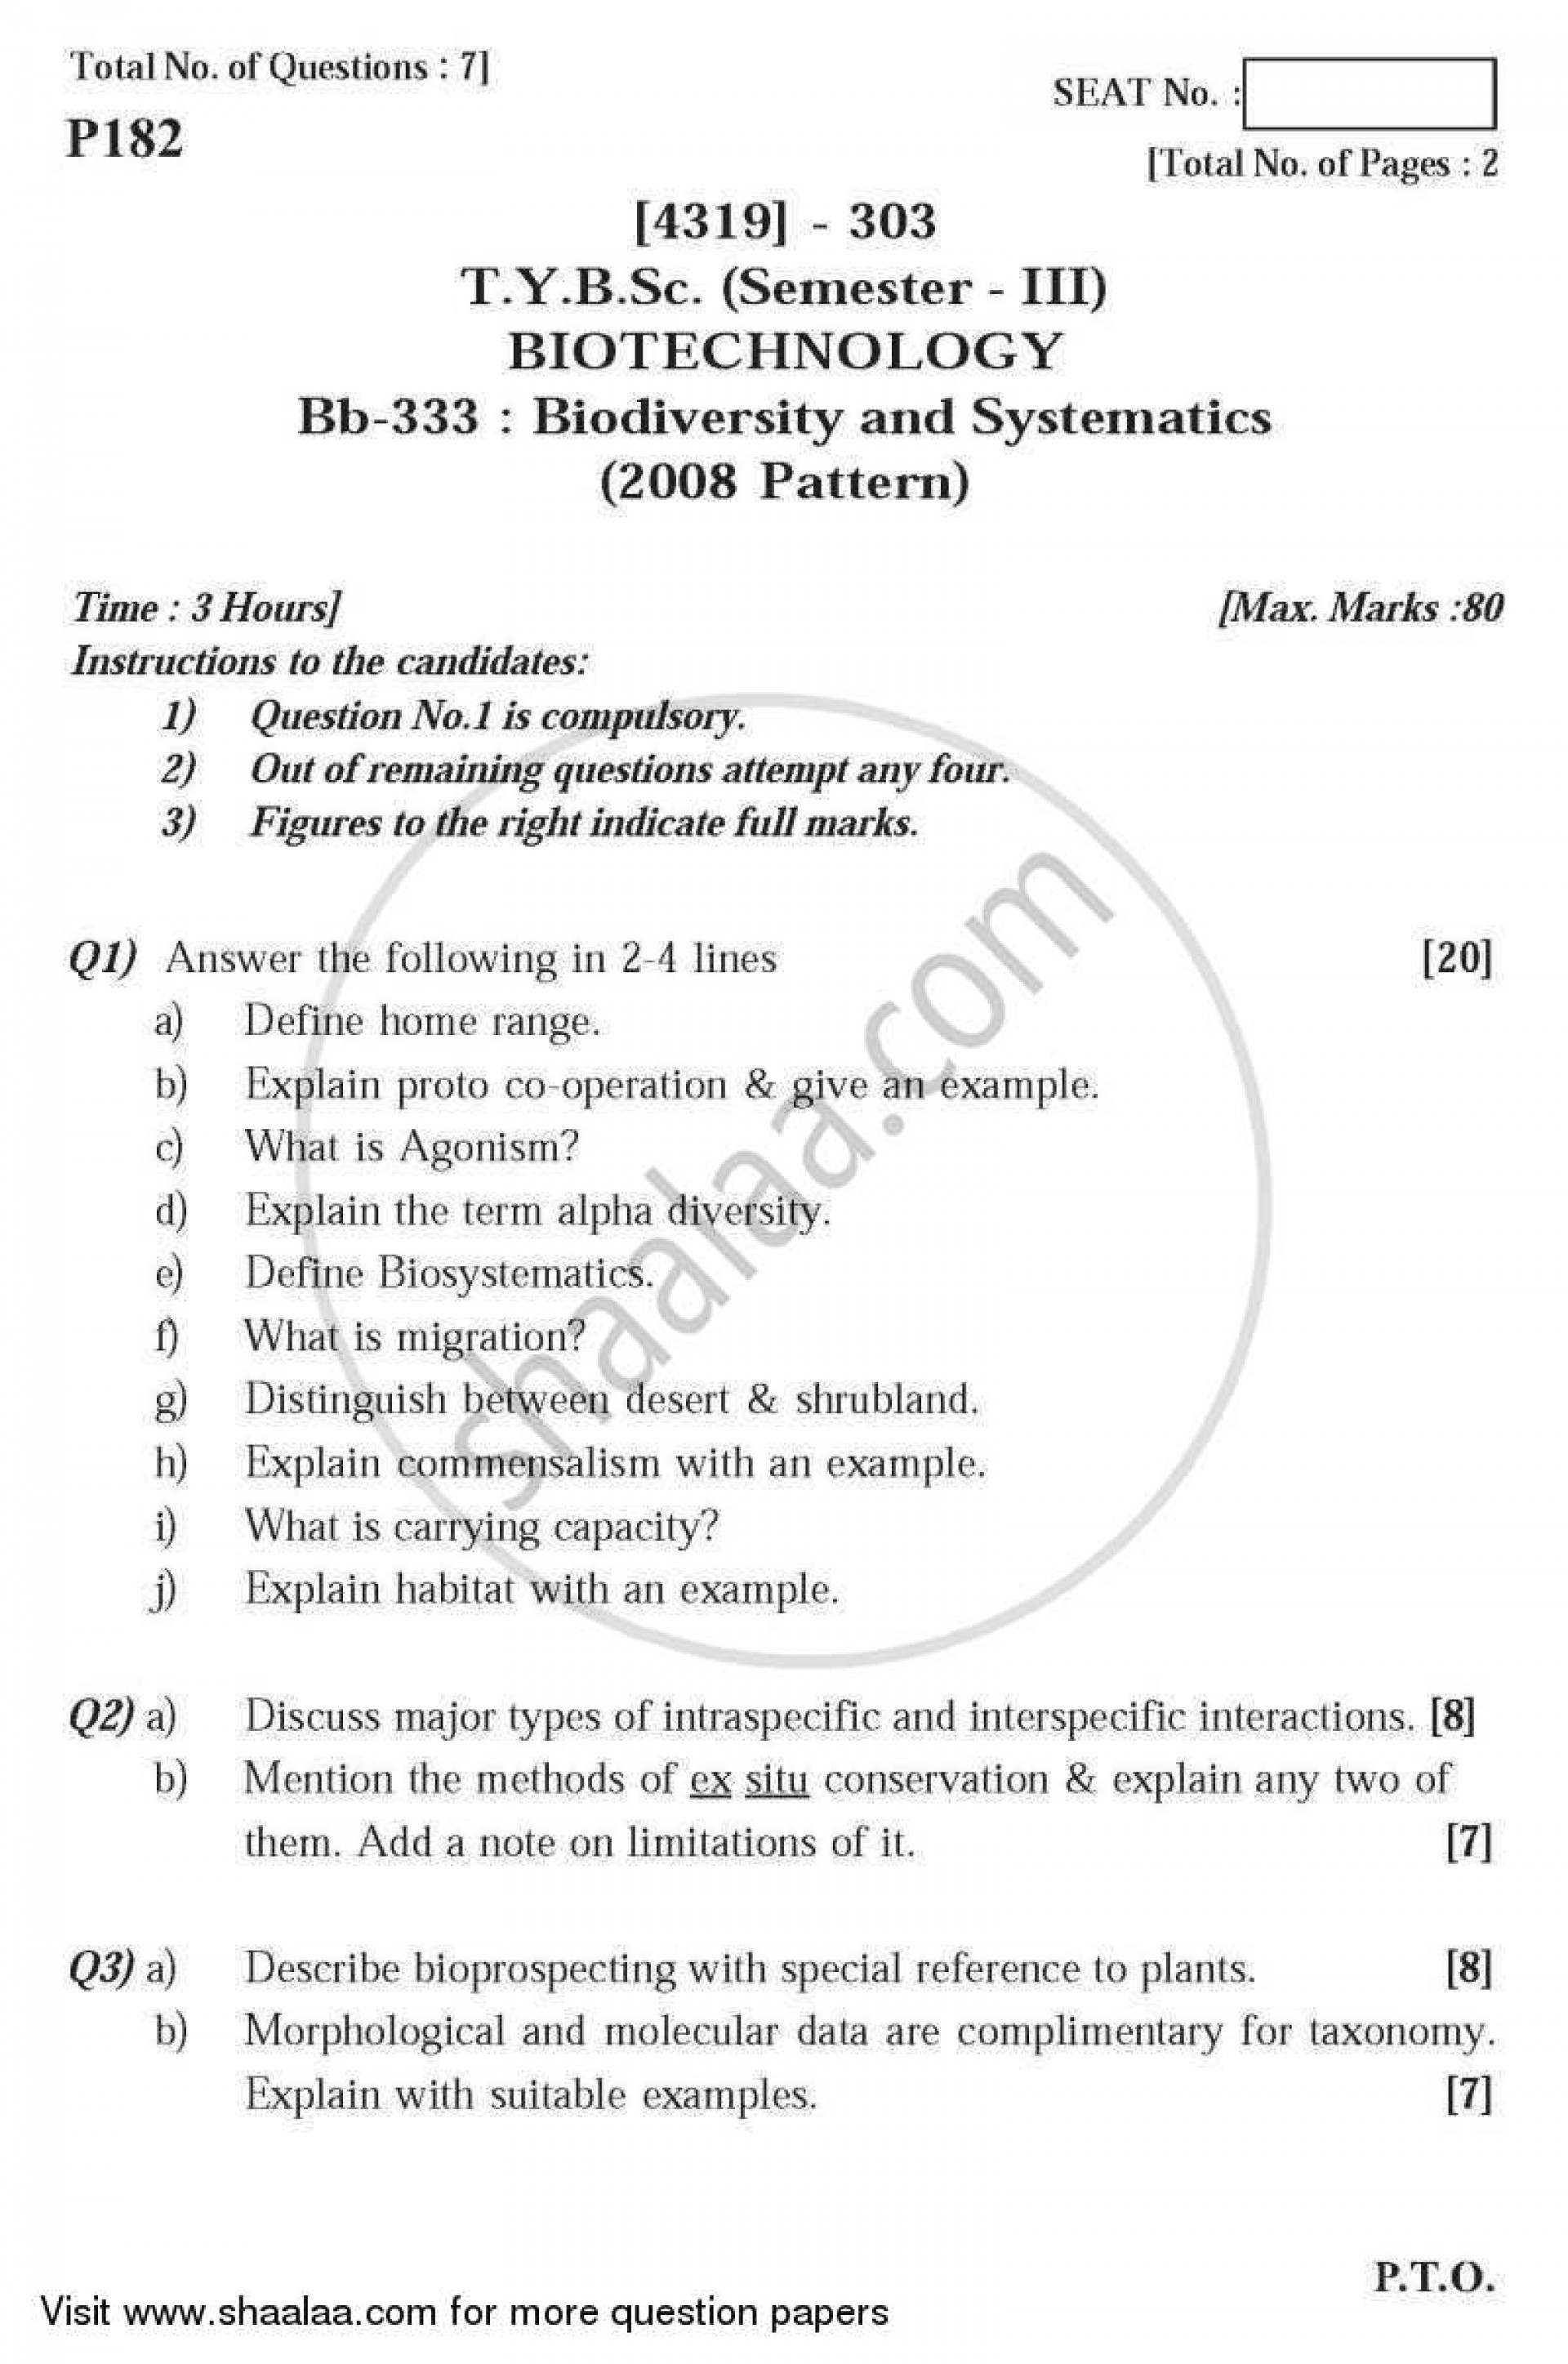 005 Essay Example University Of Pune Bachelor Bsc Biodiversity Systematics Semester Tybsc 2014 241e4b2d3b7a347c791967f1213c86ee3 Phenomenal Topics Questions 1920